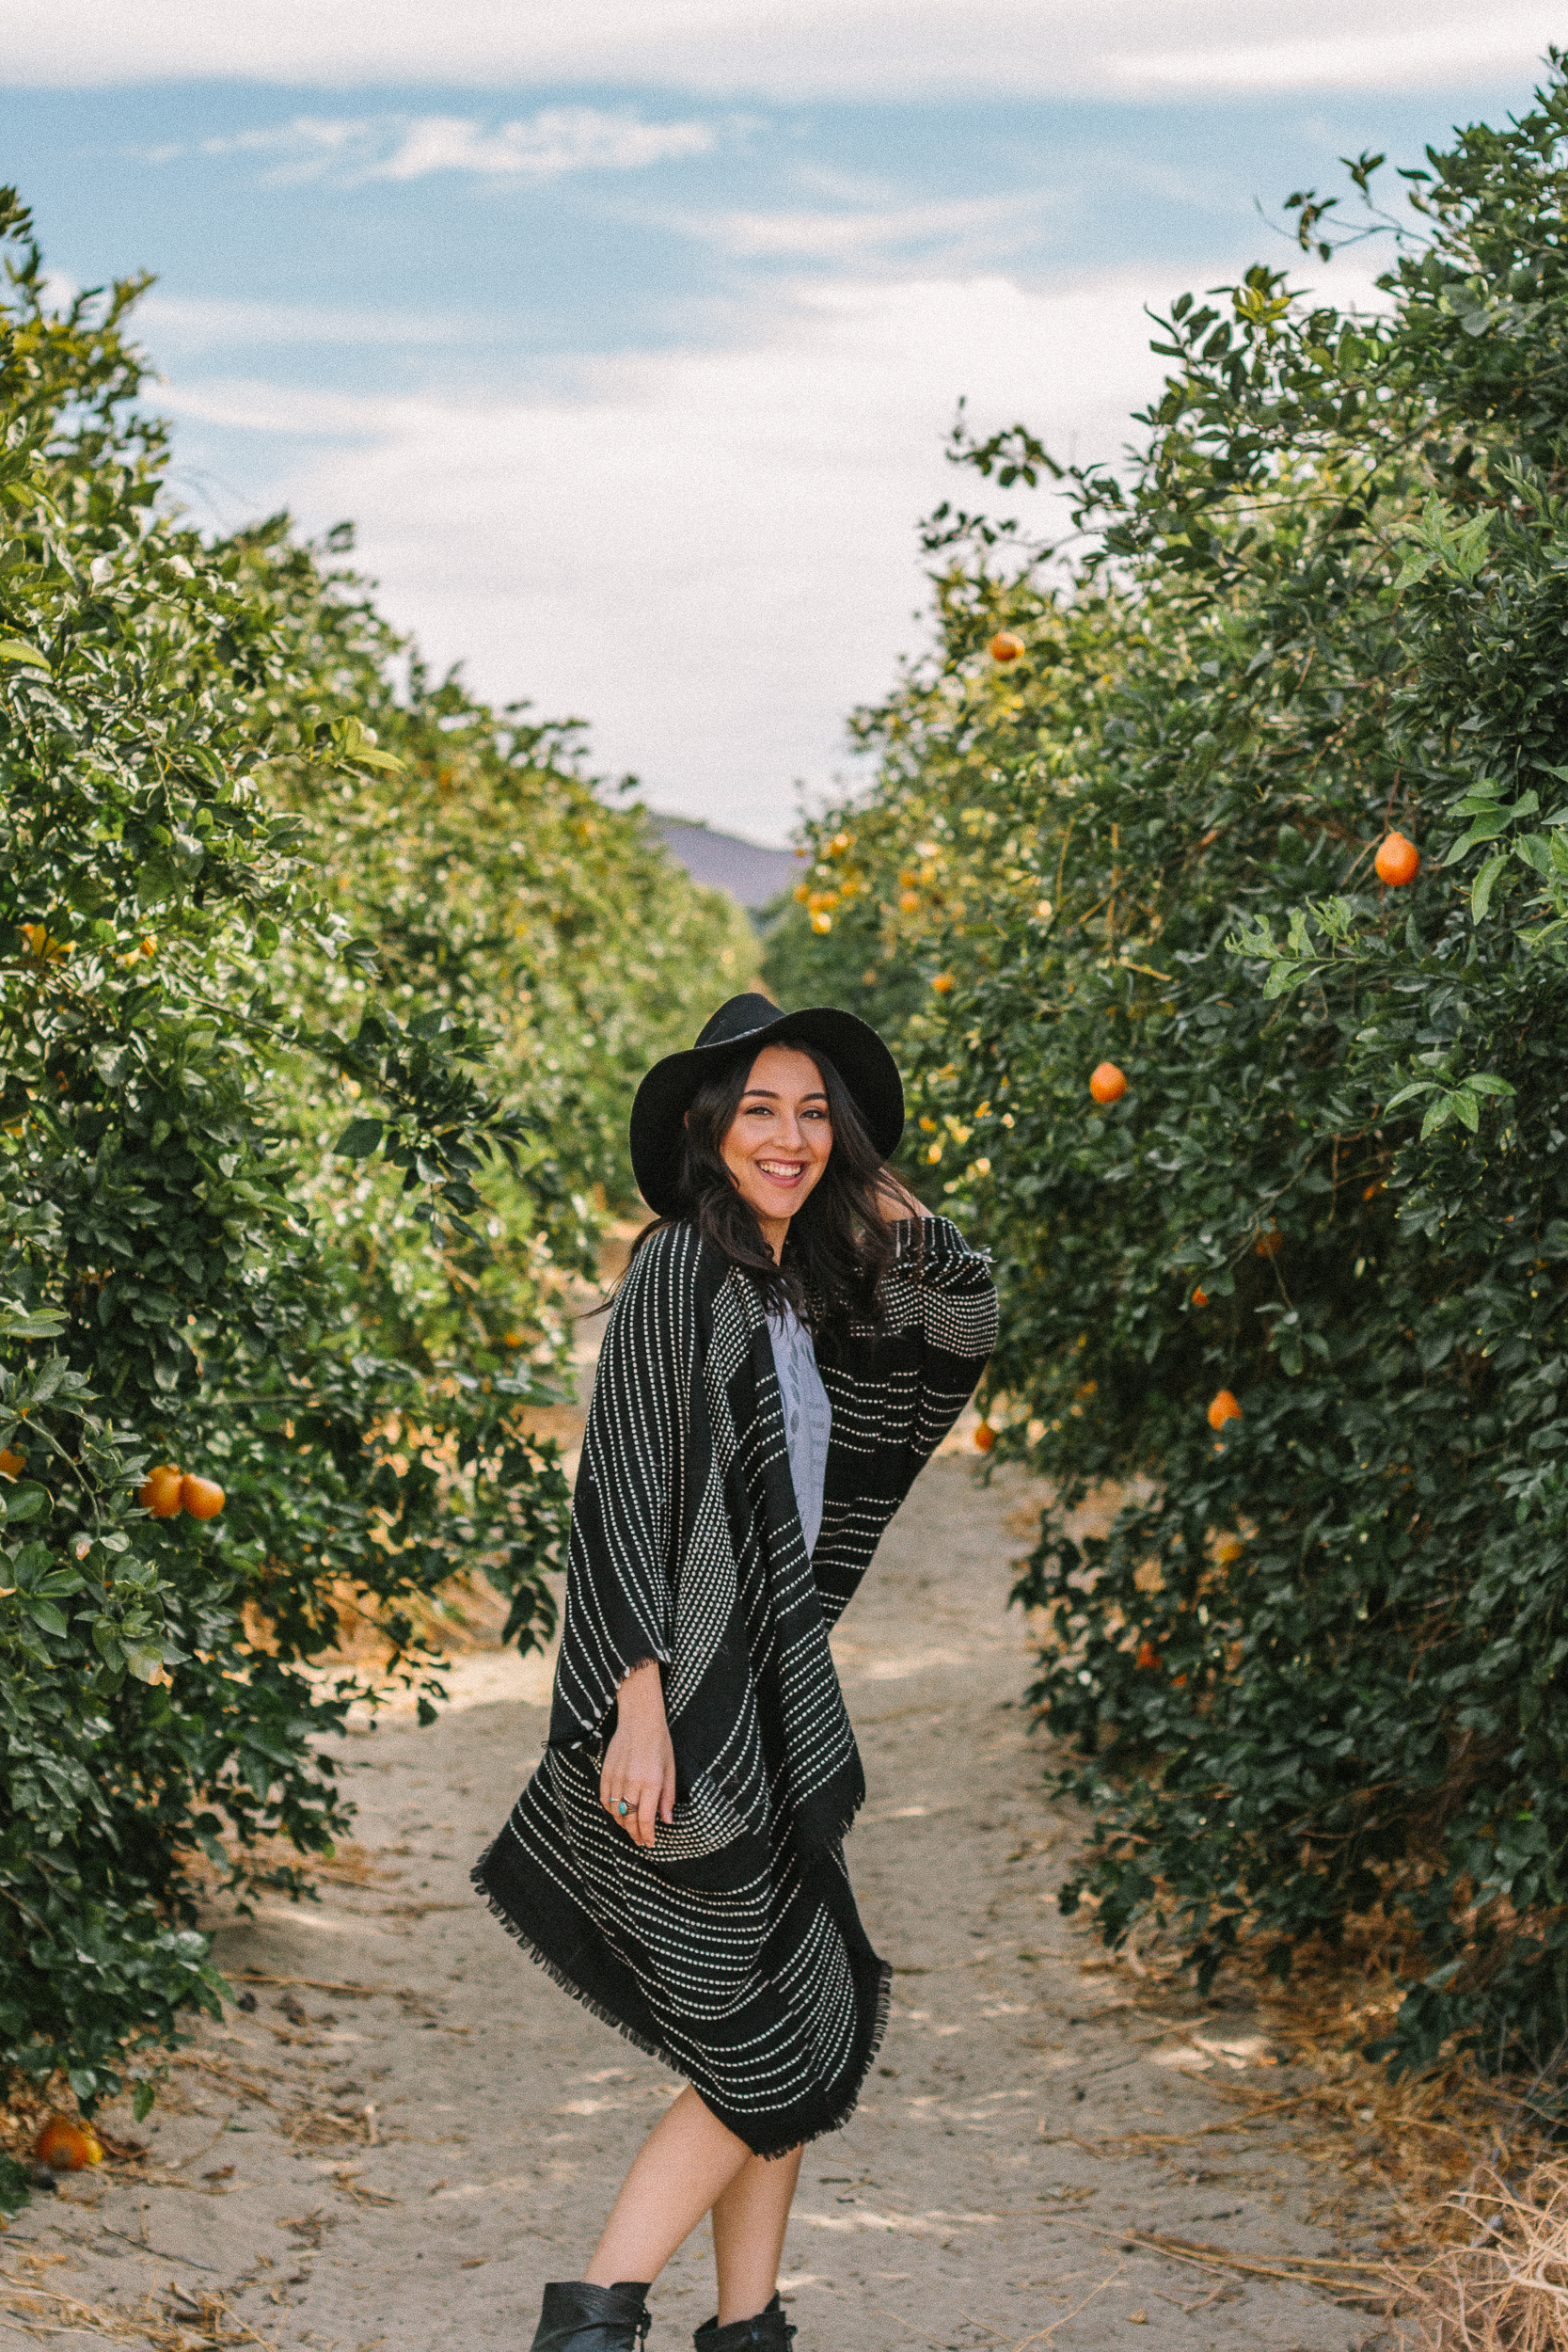 borrego springs orange orchard 3